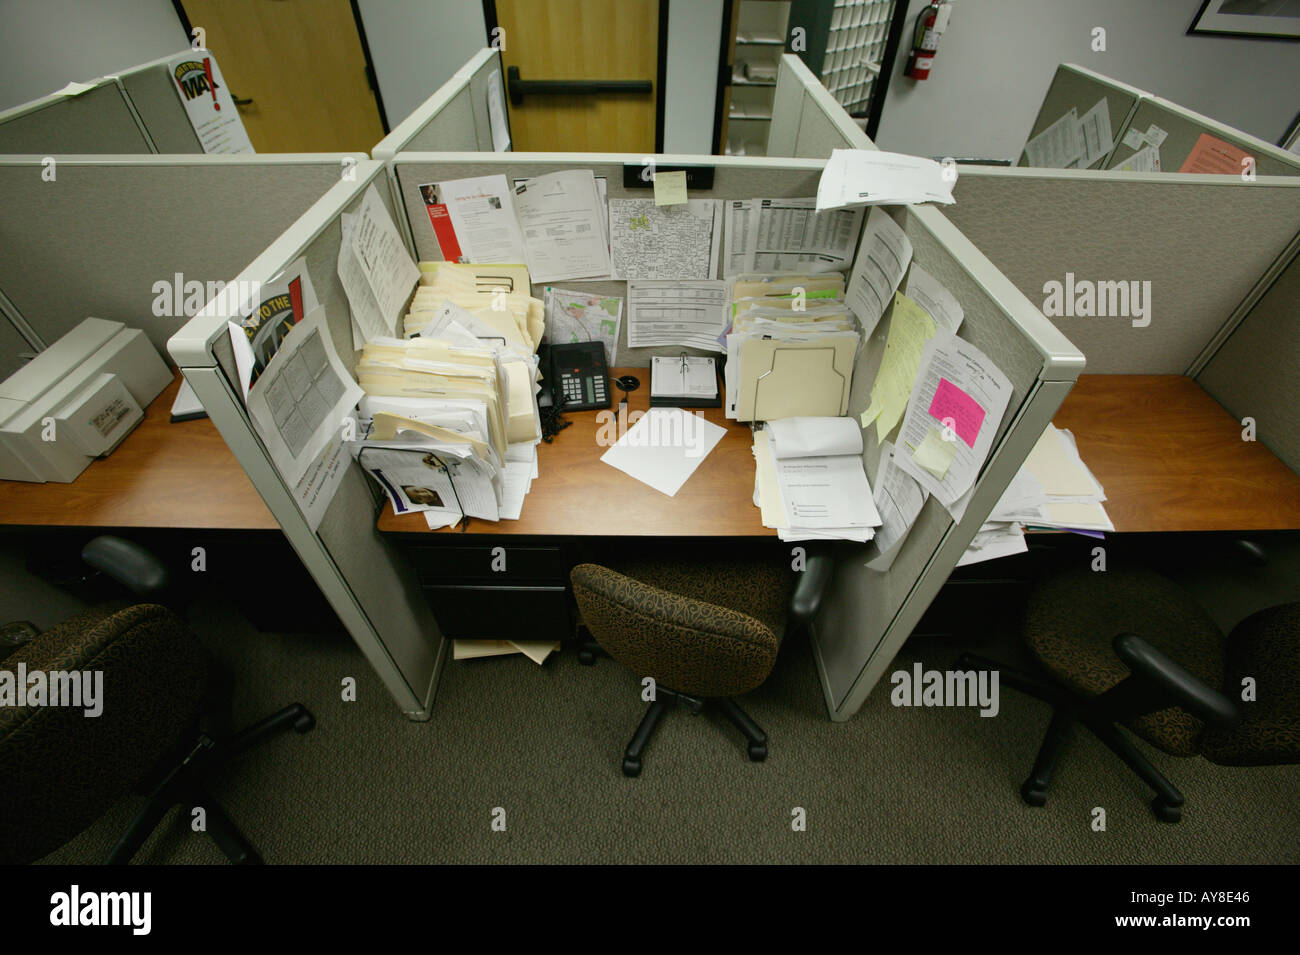 Messy Office Stock Photos Messy Office Stock Images Alamy